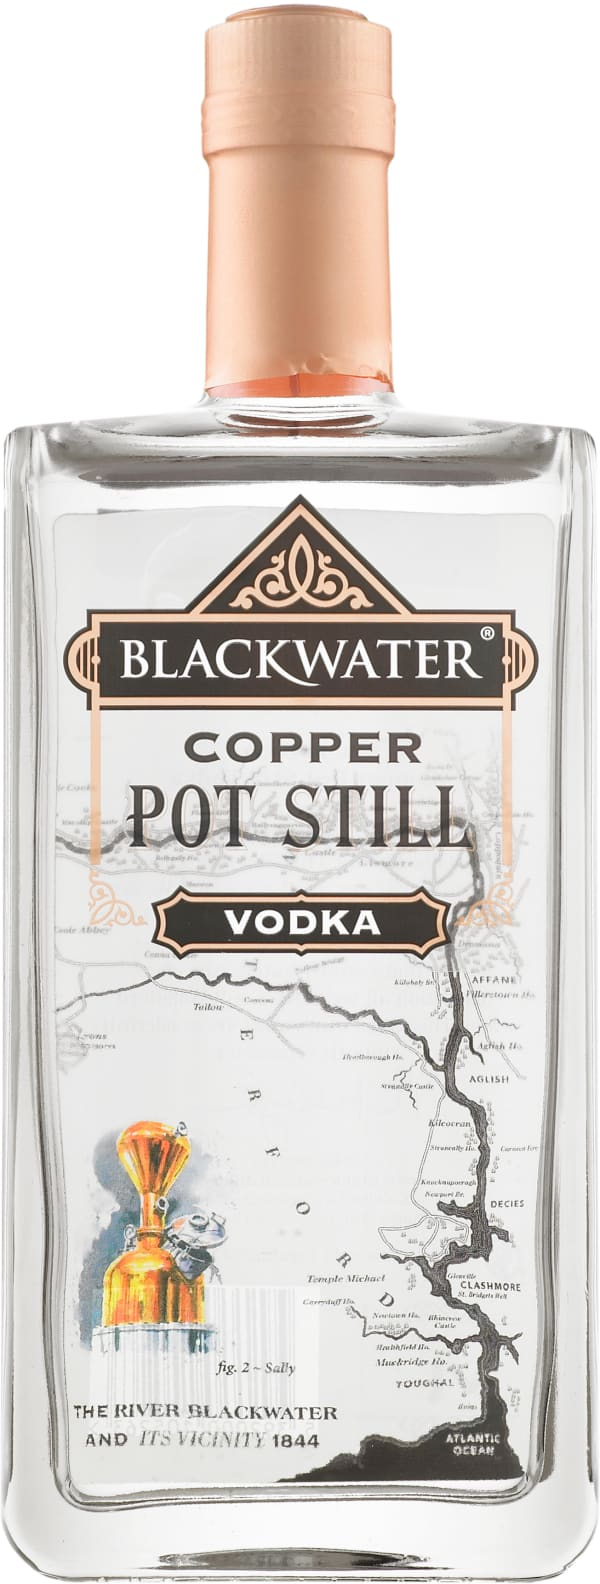 Blackwater Pot Still Vodka